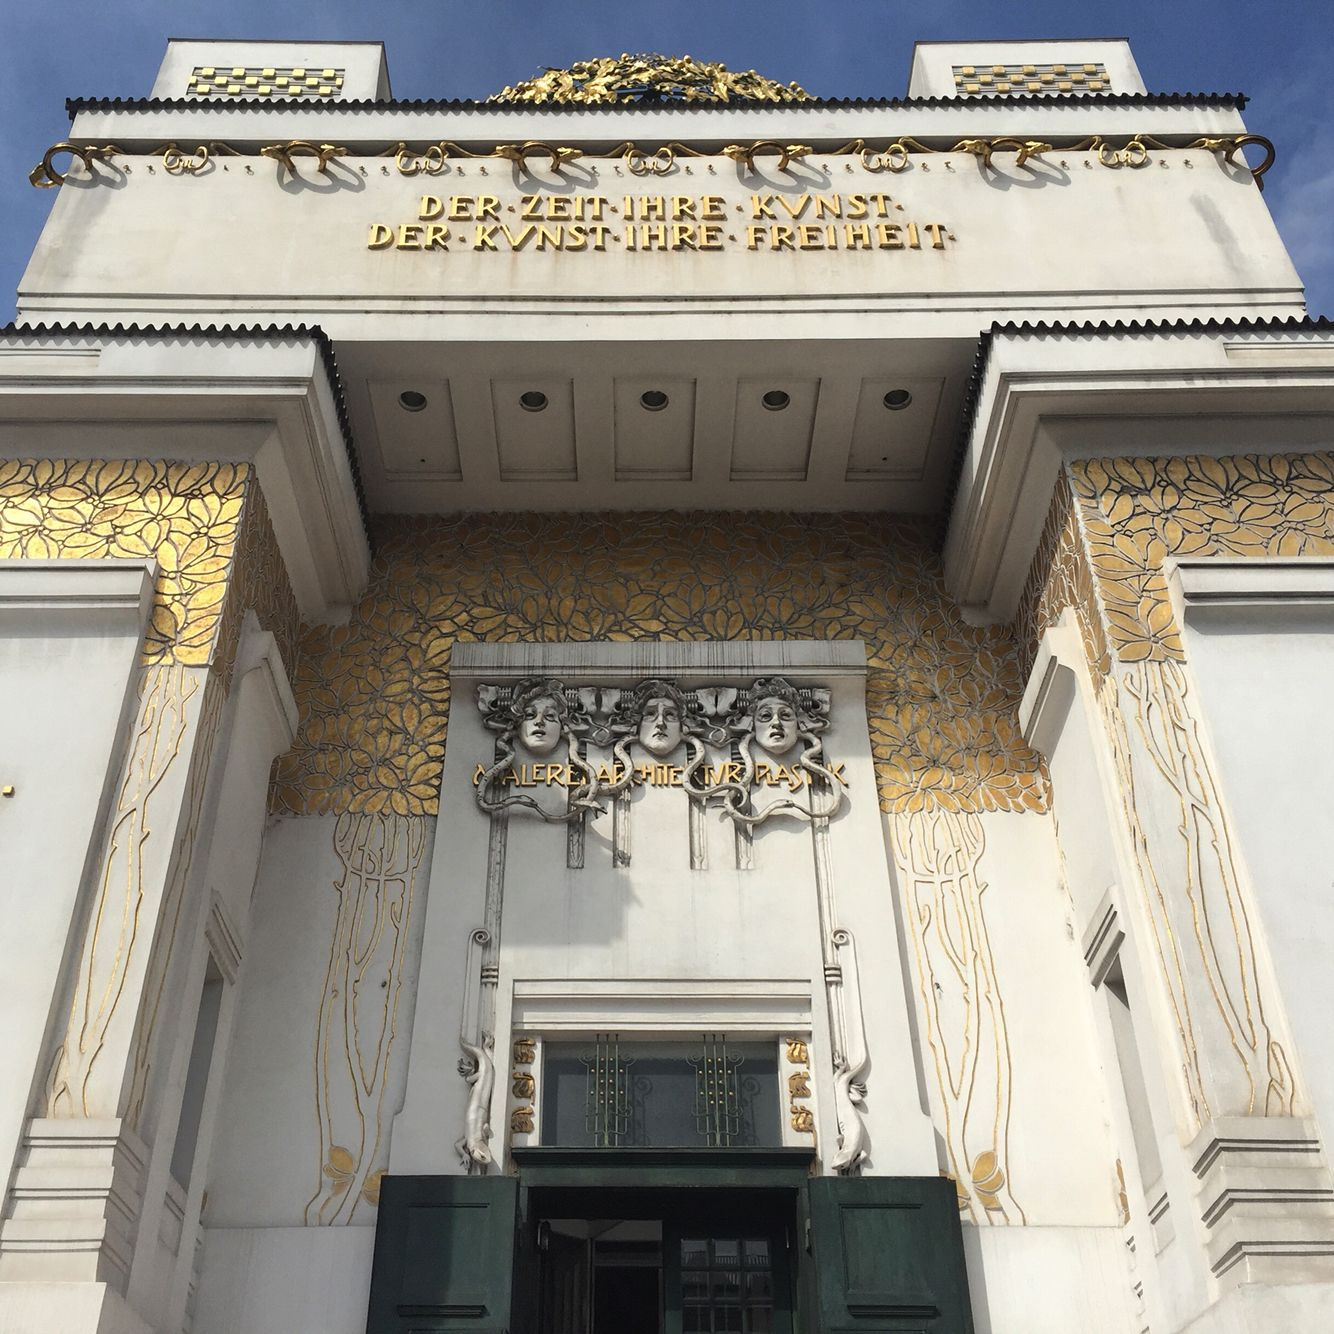 The Secession building glowing in its full gilded glory, Joseph Maria Olbrich, Vienna 1897-8